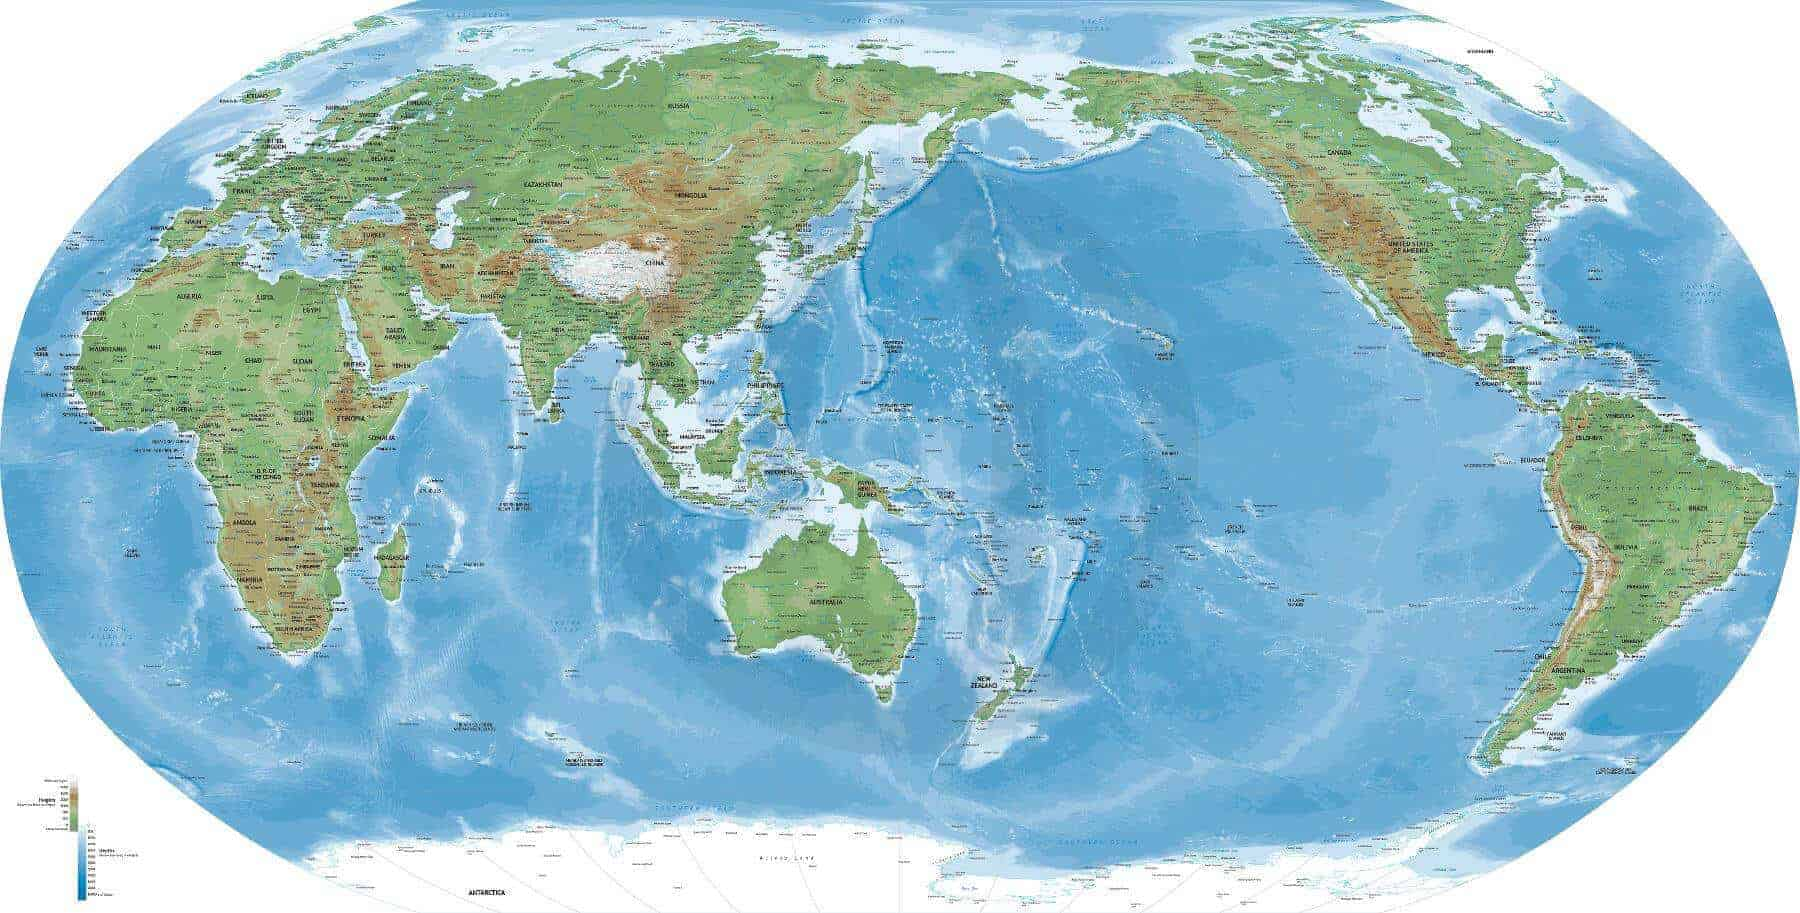 Australia In World Map.Naturalist Map Of The World High Detail Robinson Asia And Australia Centered